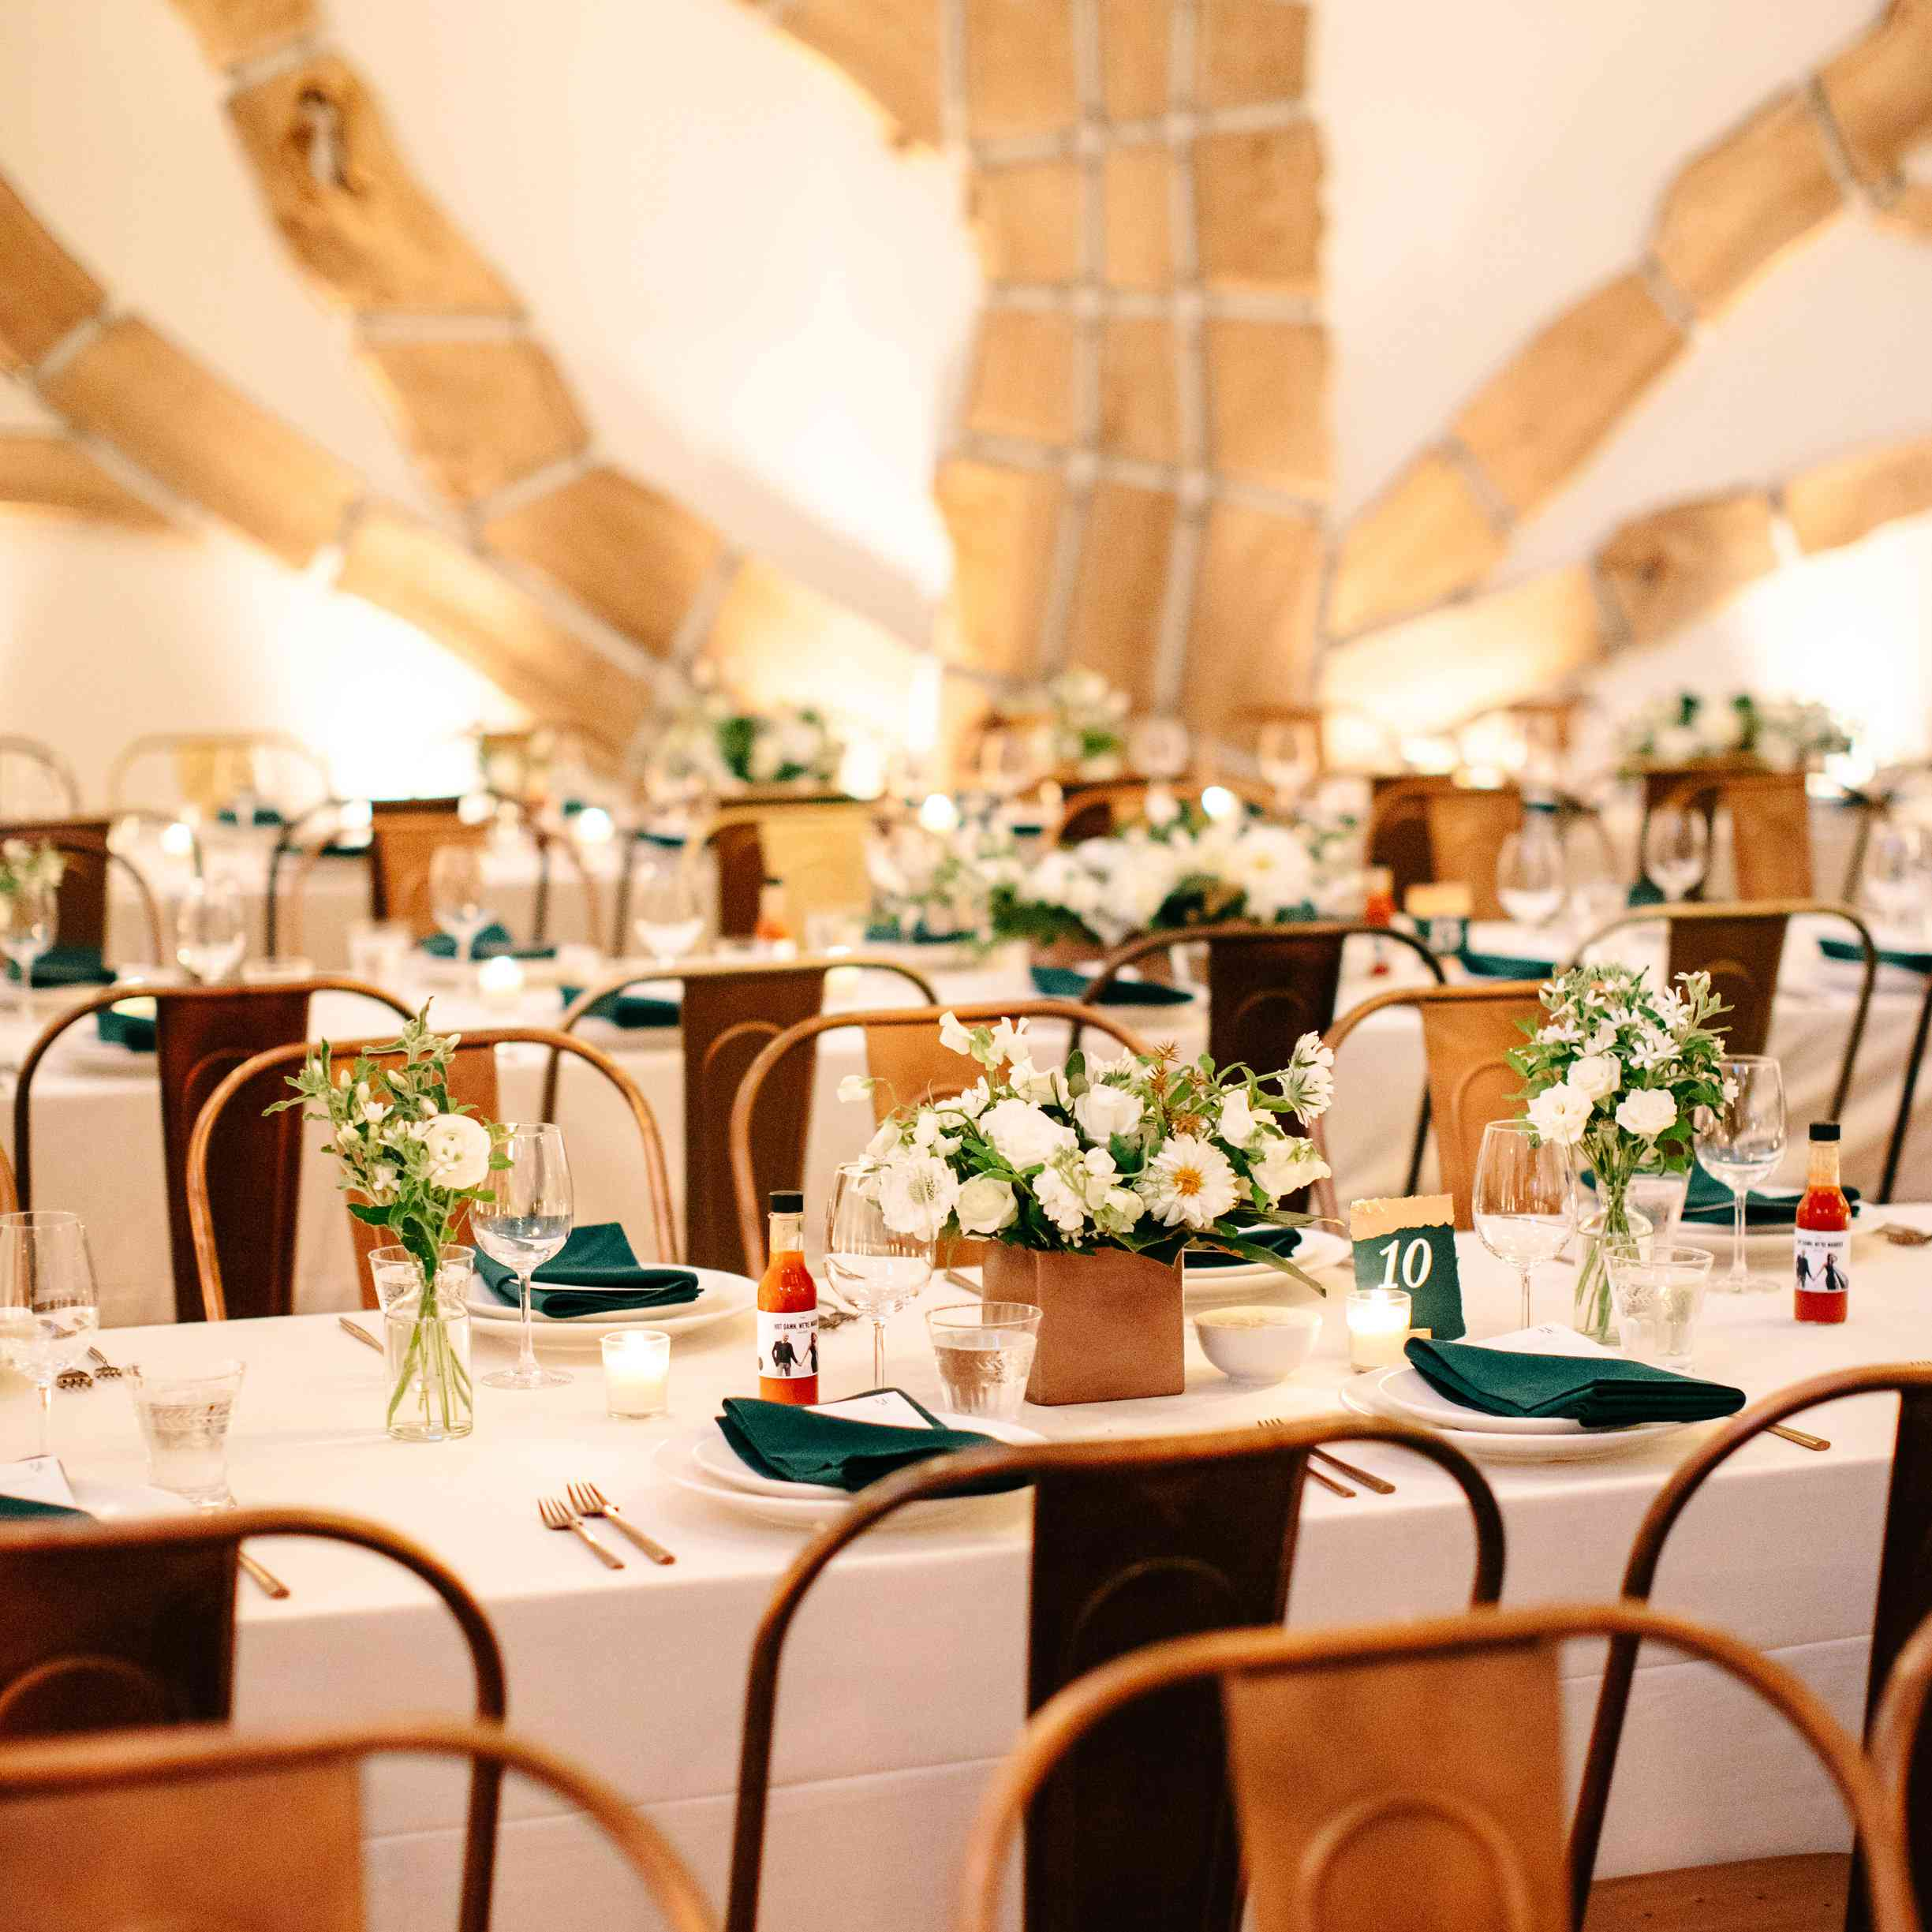 Wedding seating tablescape